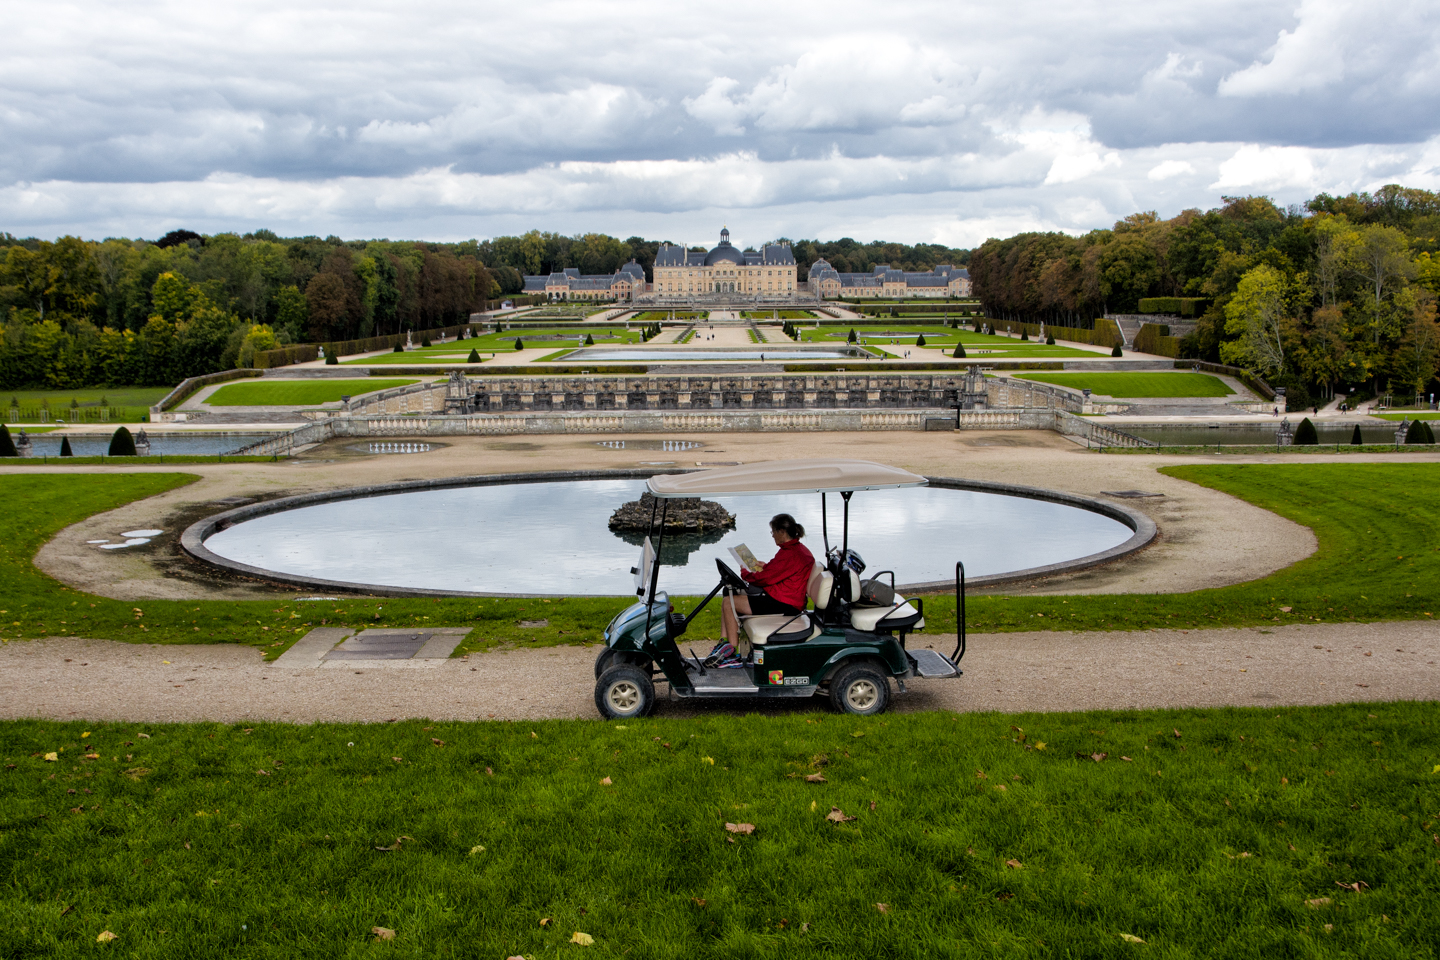 Hiring a golf cart makes it easy to get to get around the large gardens.